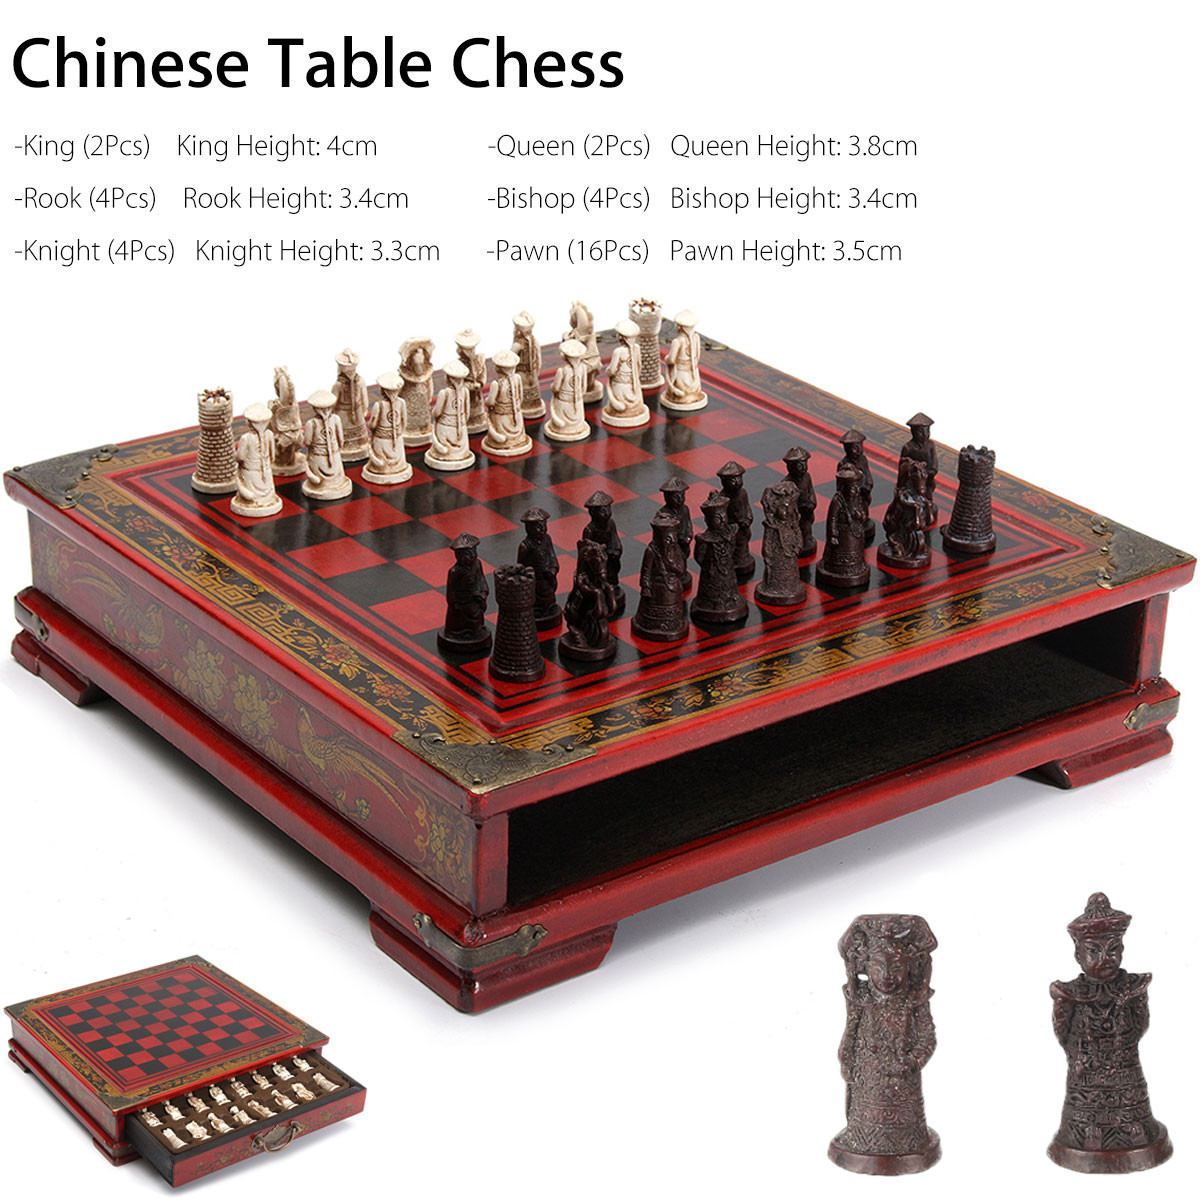 32Pcs/Set Wooden Table Chess Chinese Chess Games Resin Chessman Christmas Birthday Premium Gifts Entertainment Board Game32Pcs/Set Wooden Table Chess Chinese Chess Games Resin Chessman Christmas Birthday Premium Gifts Entertainment Board Game